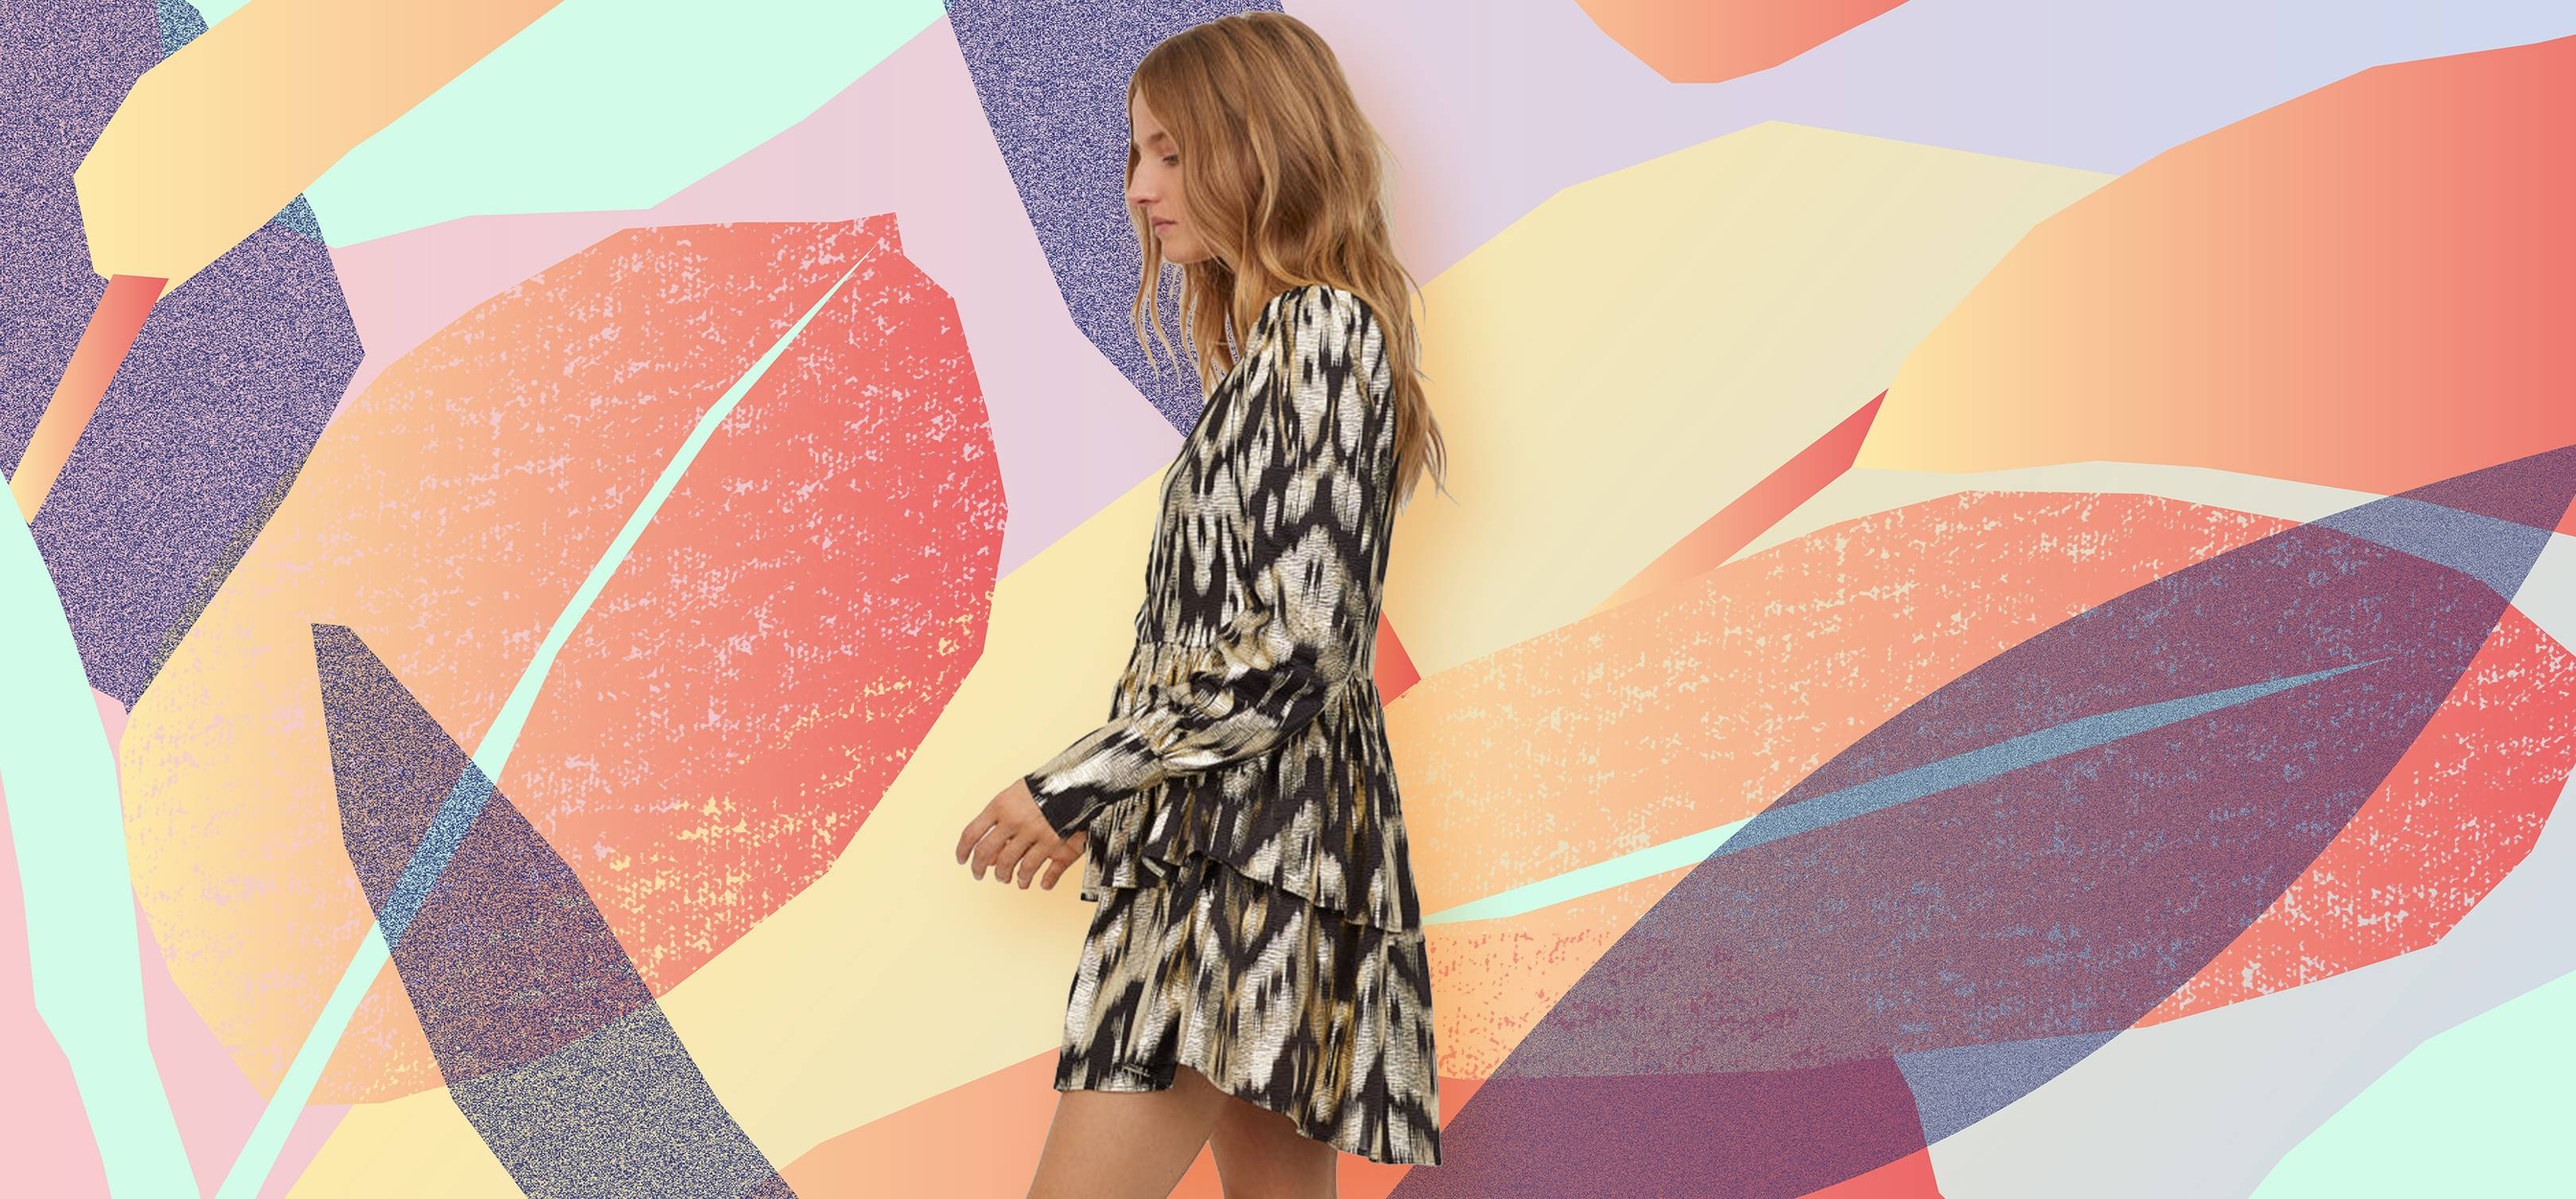 H&M's Christmas party dress collection just dropped, here are the 7 best buys